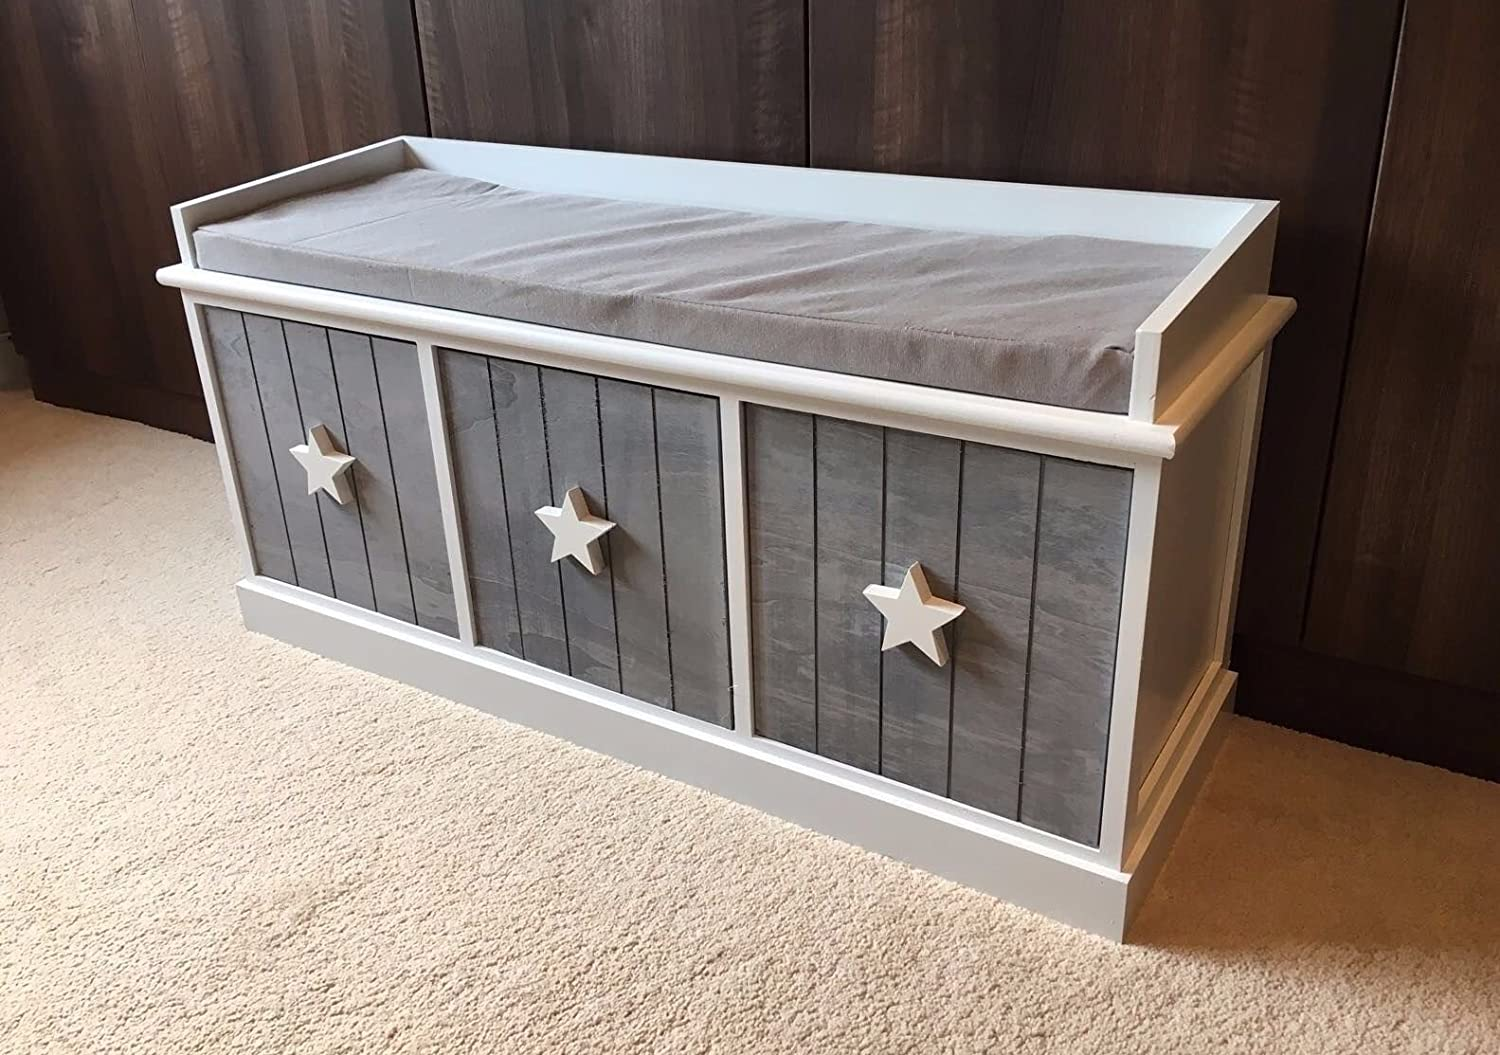 Home Delights Grey White Storage Unit Wooden Bench Shabby Chic Seat 3 Drawers Kids Room Retro